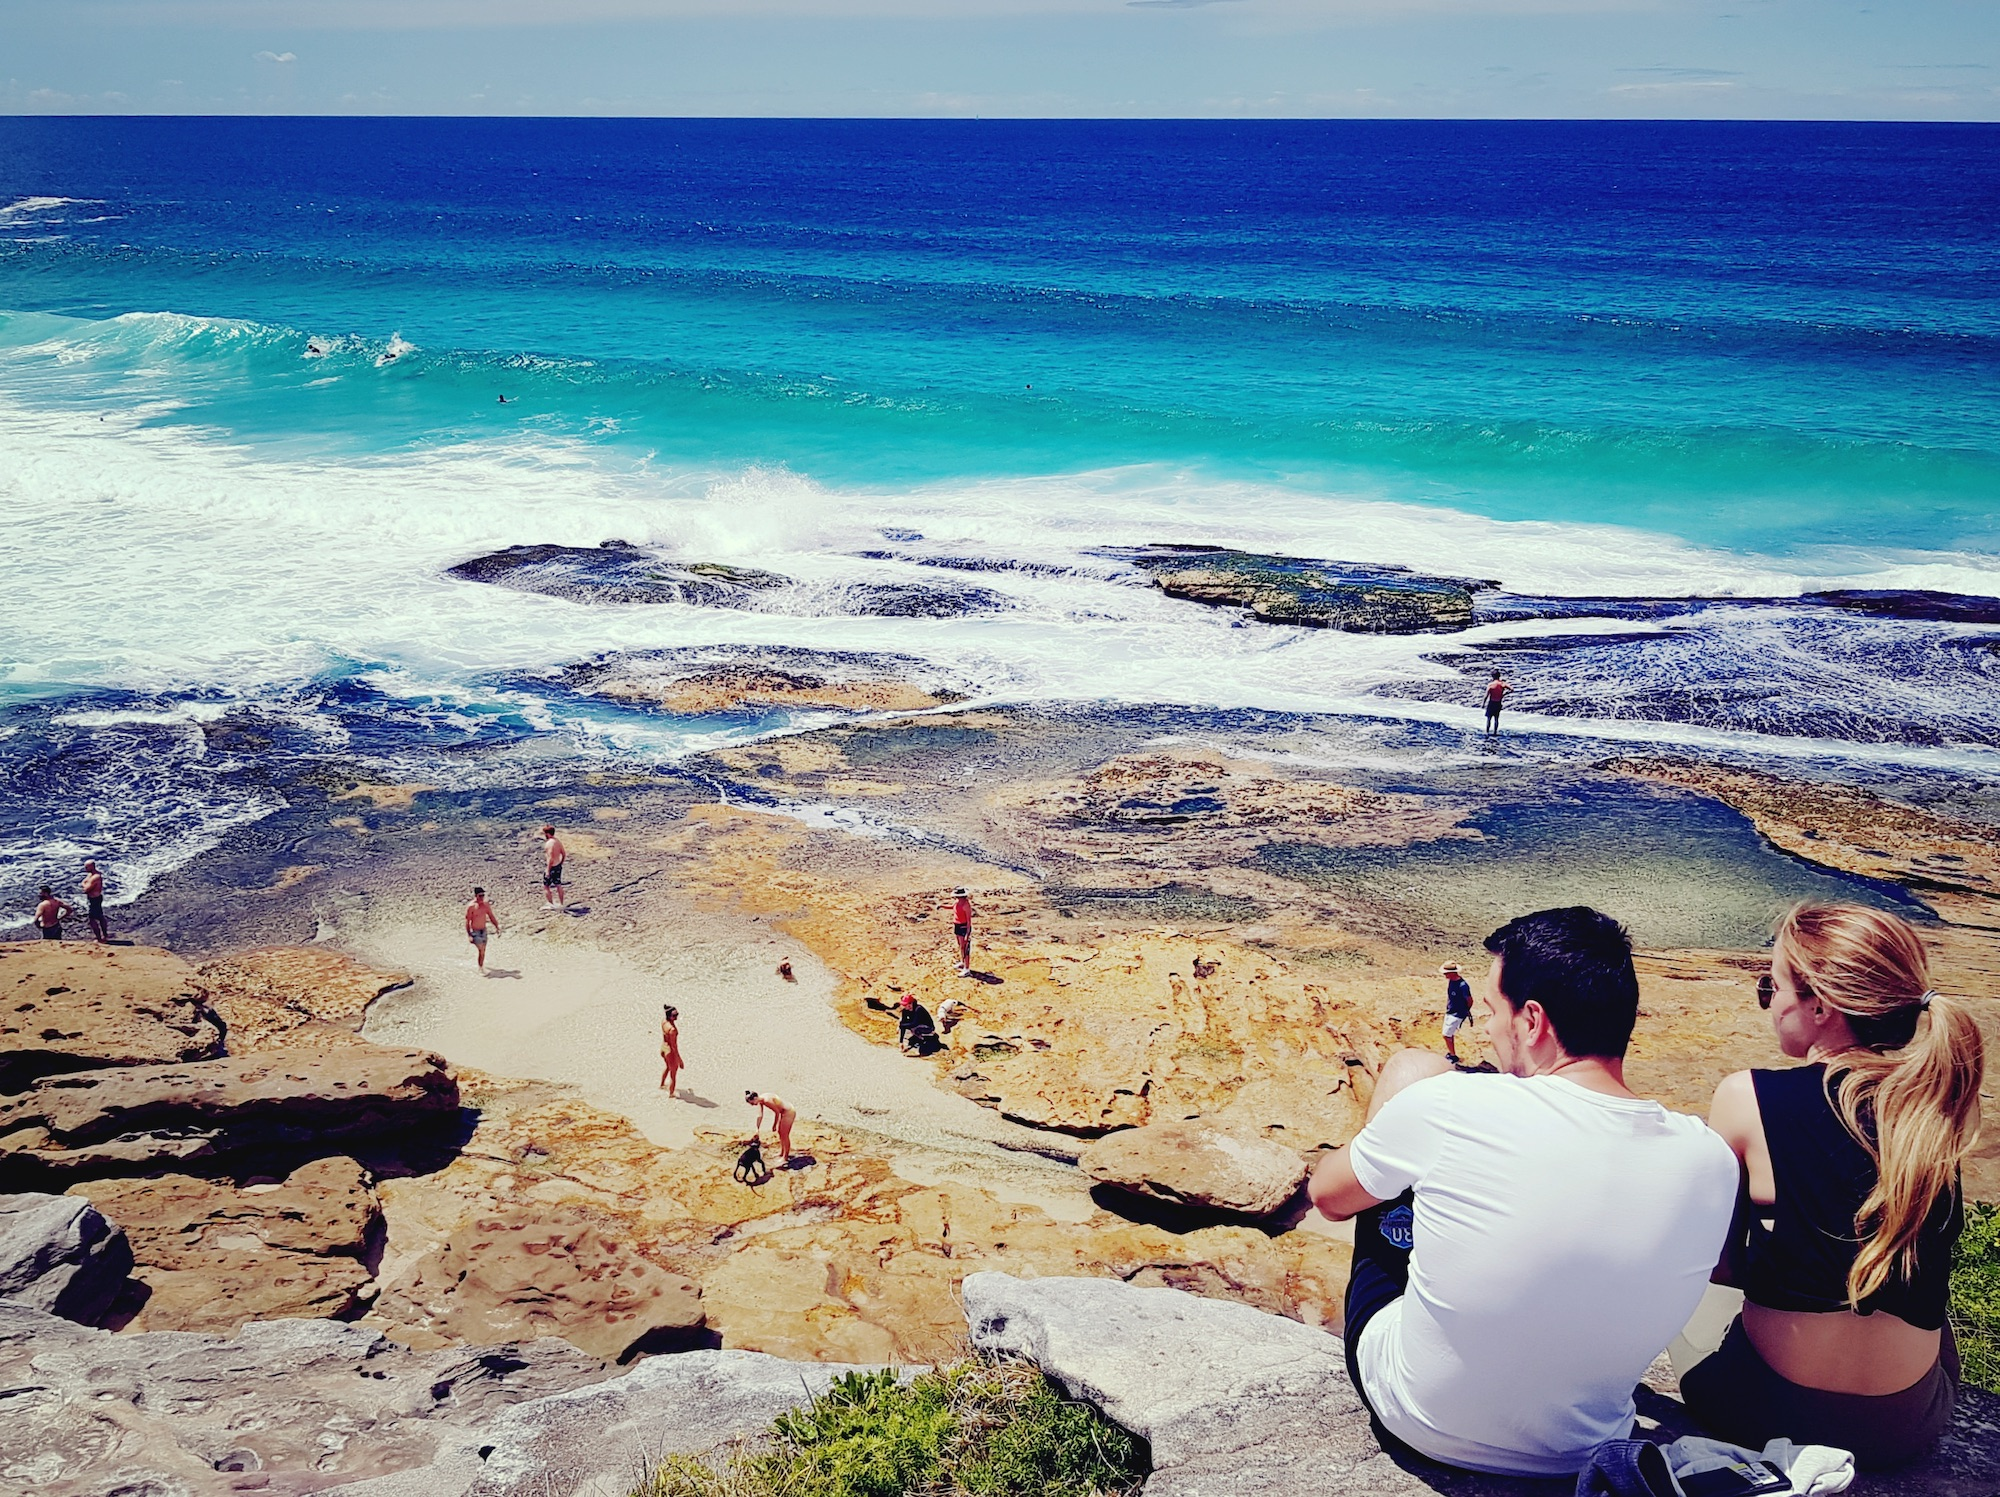 Bronte People by Lesly Cousin